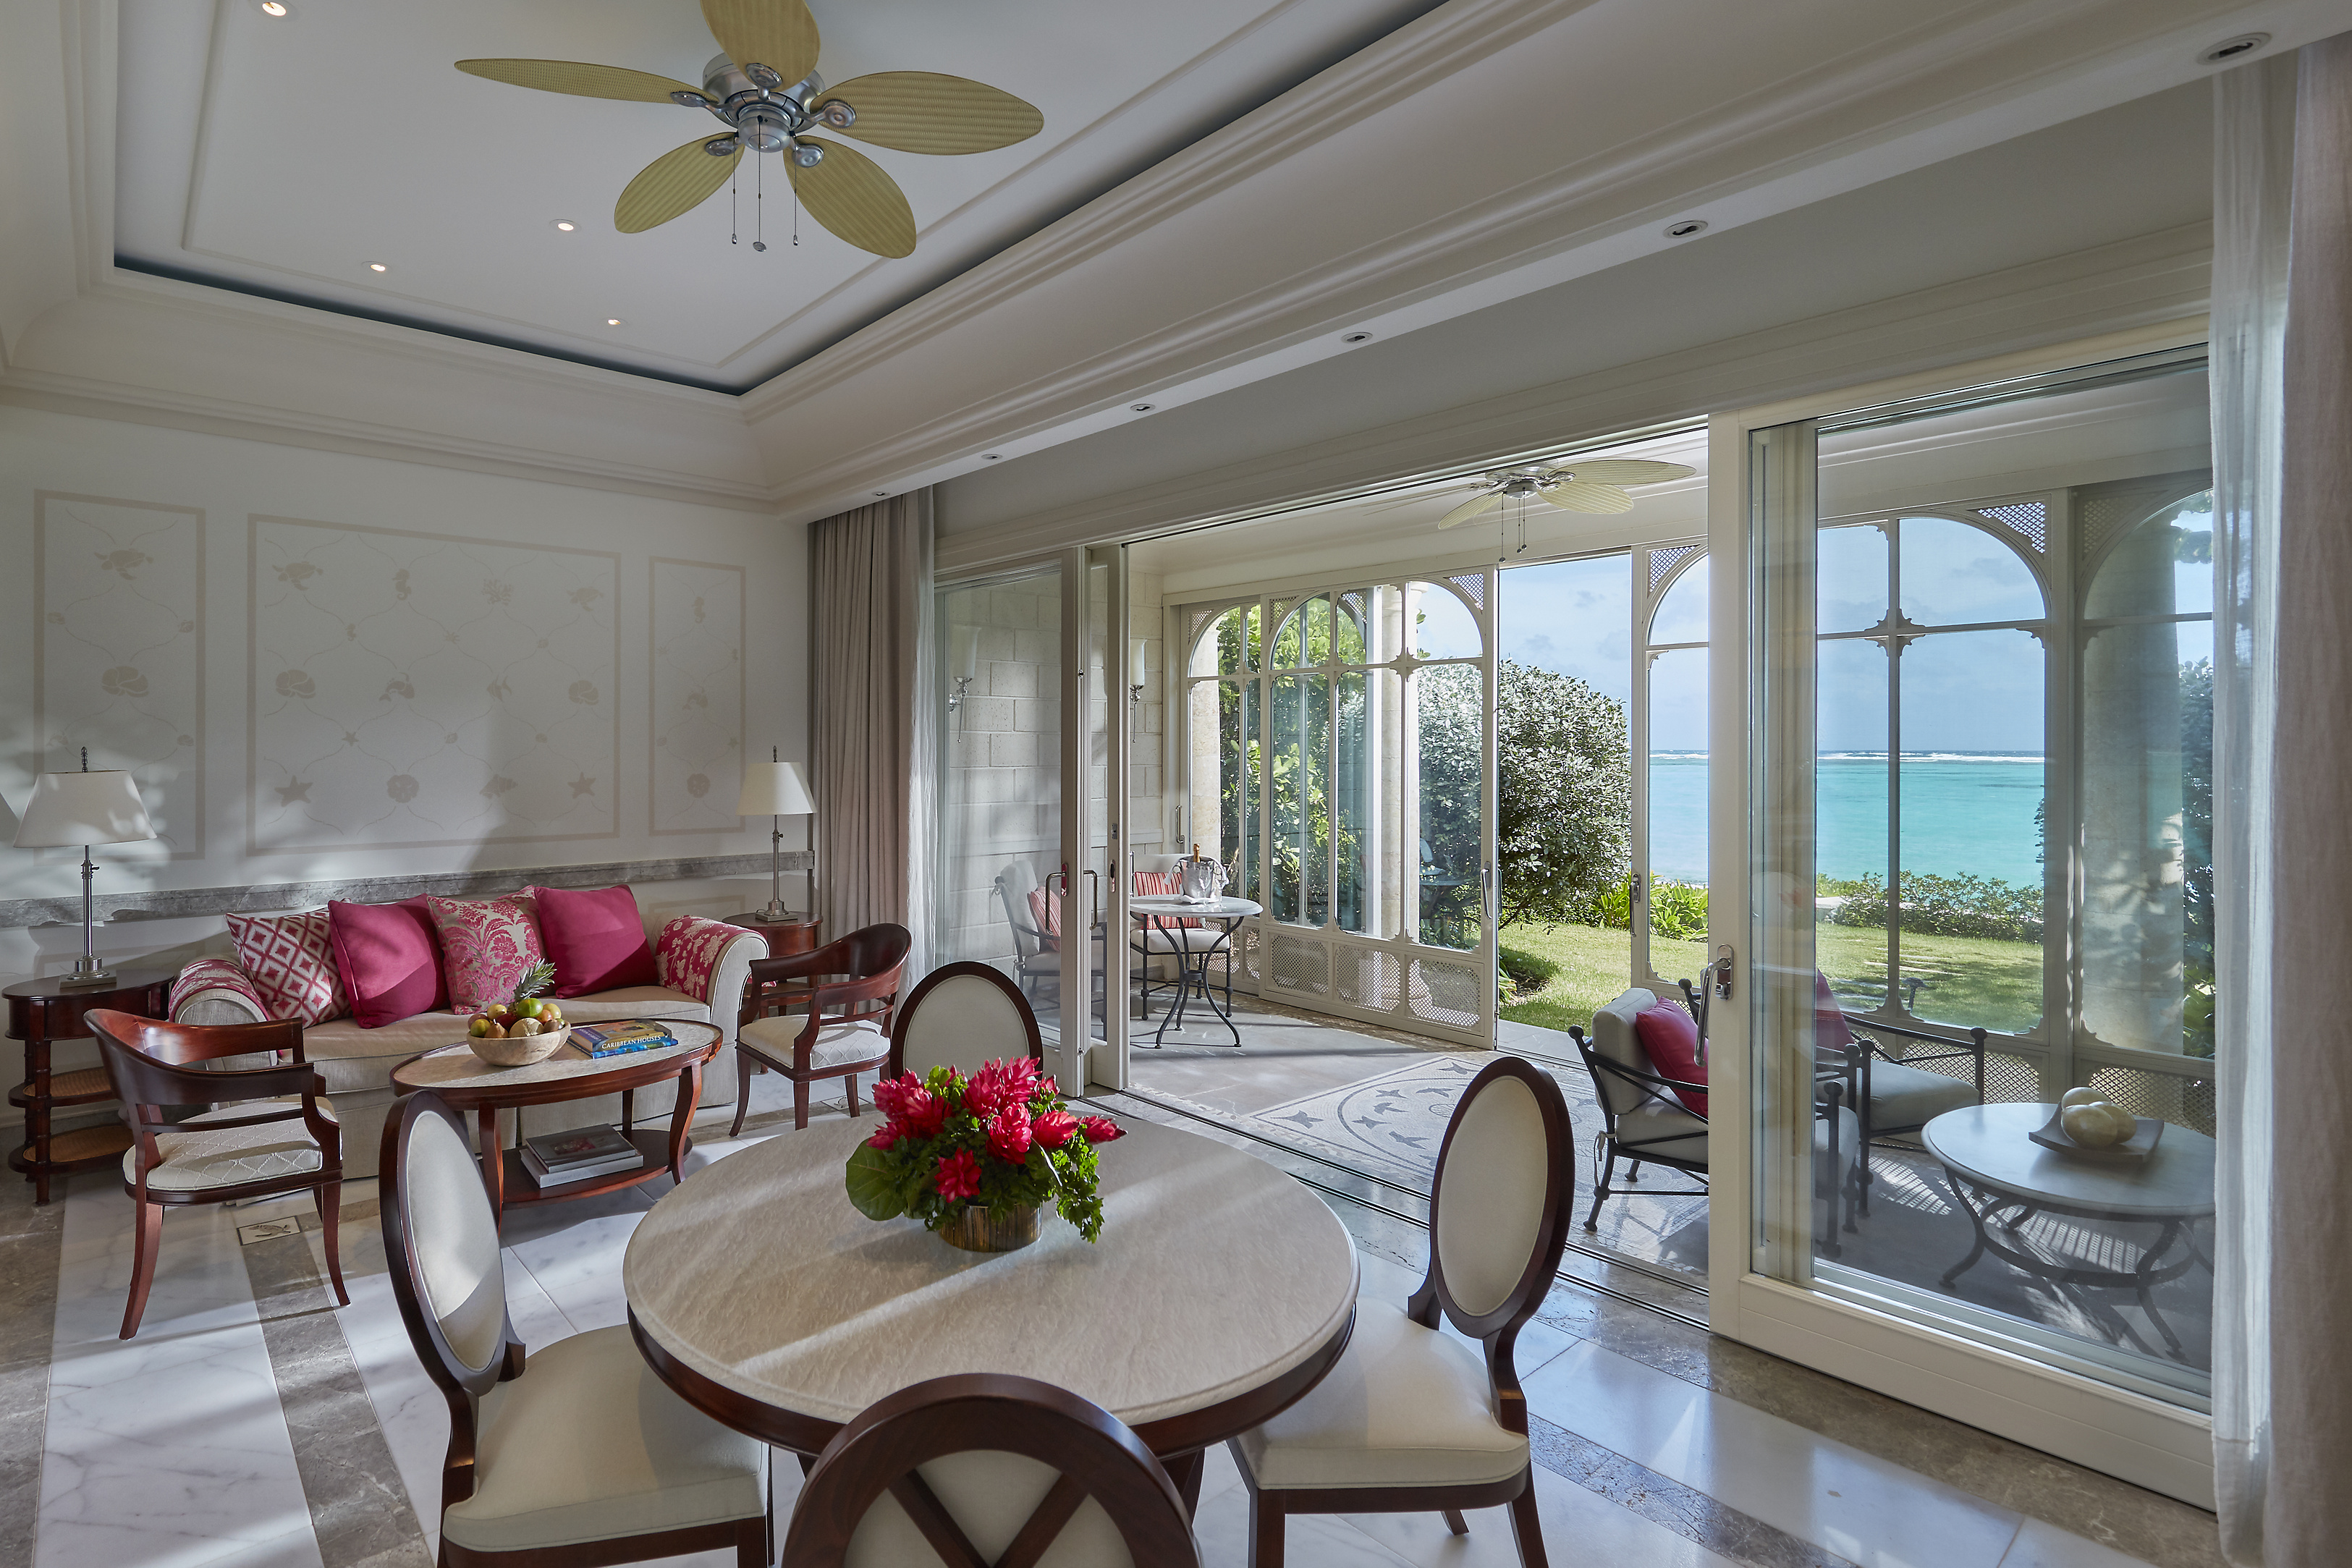 Mandarin-oriental-canouan-accommodation-one-bedroom-beachfront-suite-living-room